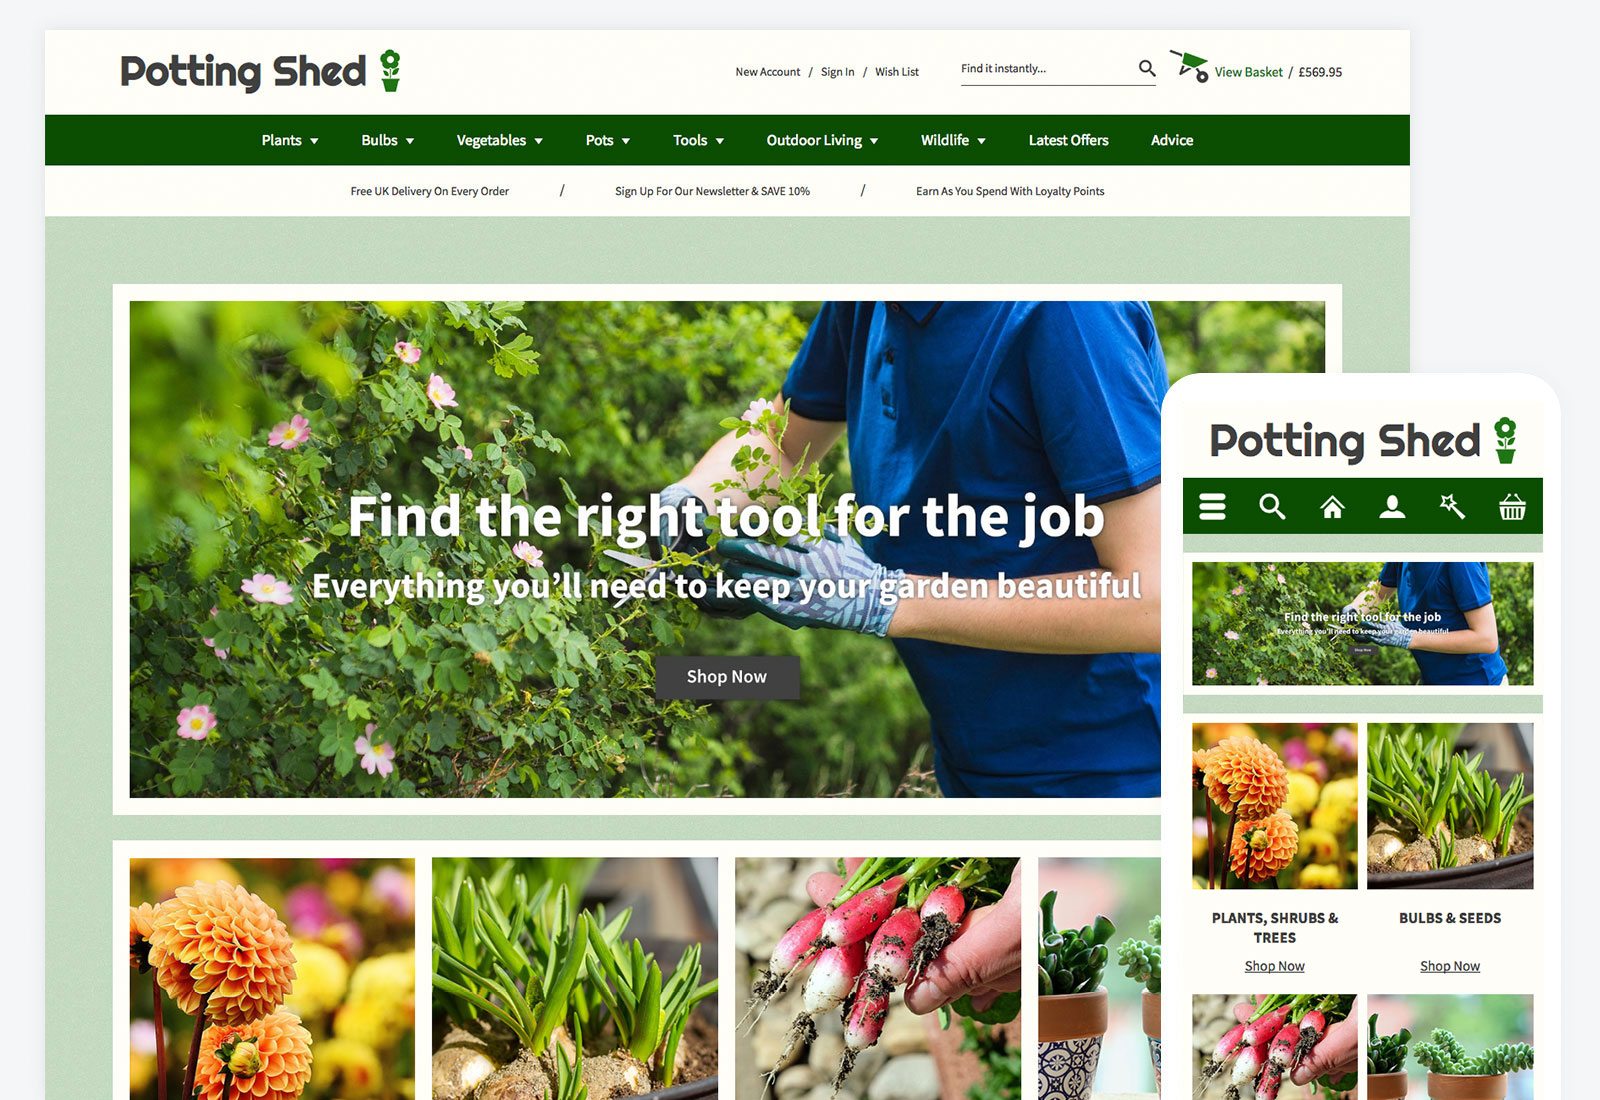 Potting Shed Theme - Ecommerce Website Template - Bluepark co uk